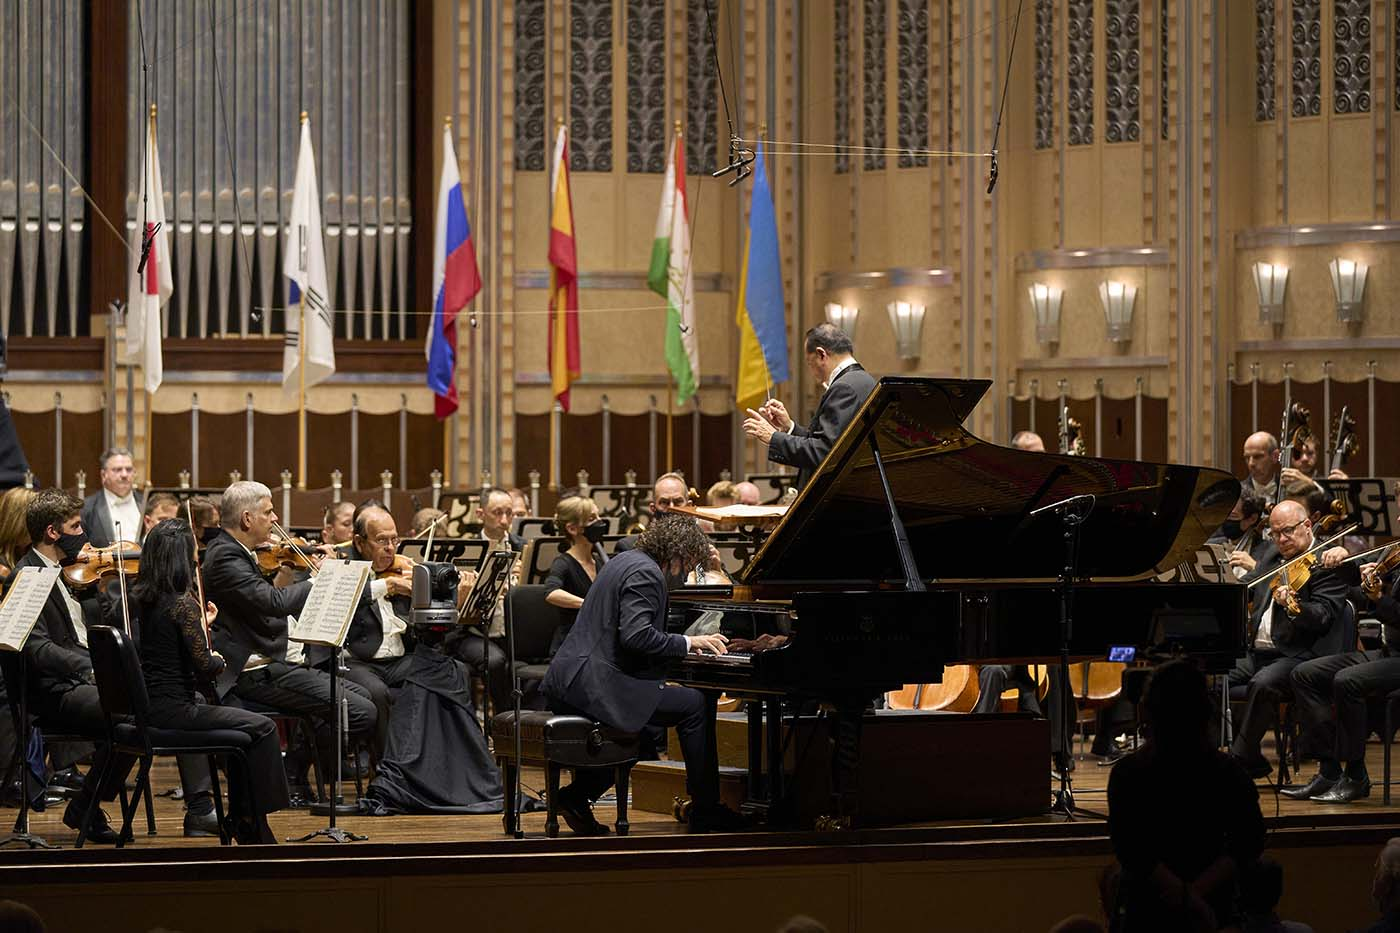 The Cleveland Orchestra with conductor Jahja Ling and Martín García García, winner of the 2021 Cleveland International Piano Competition Photo by Roger Mastroianni